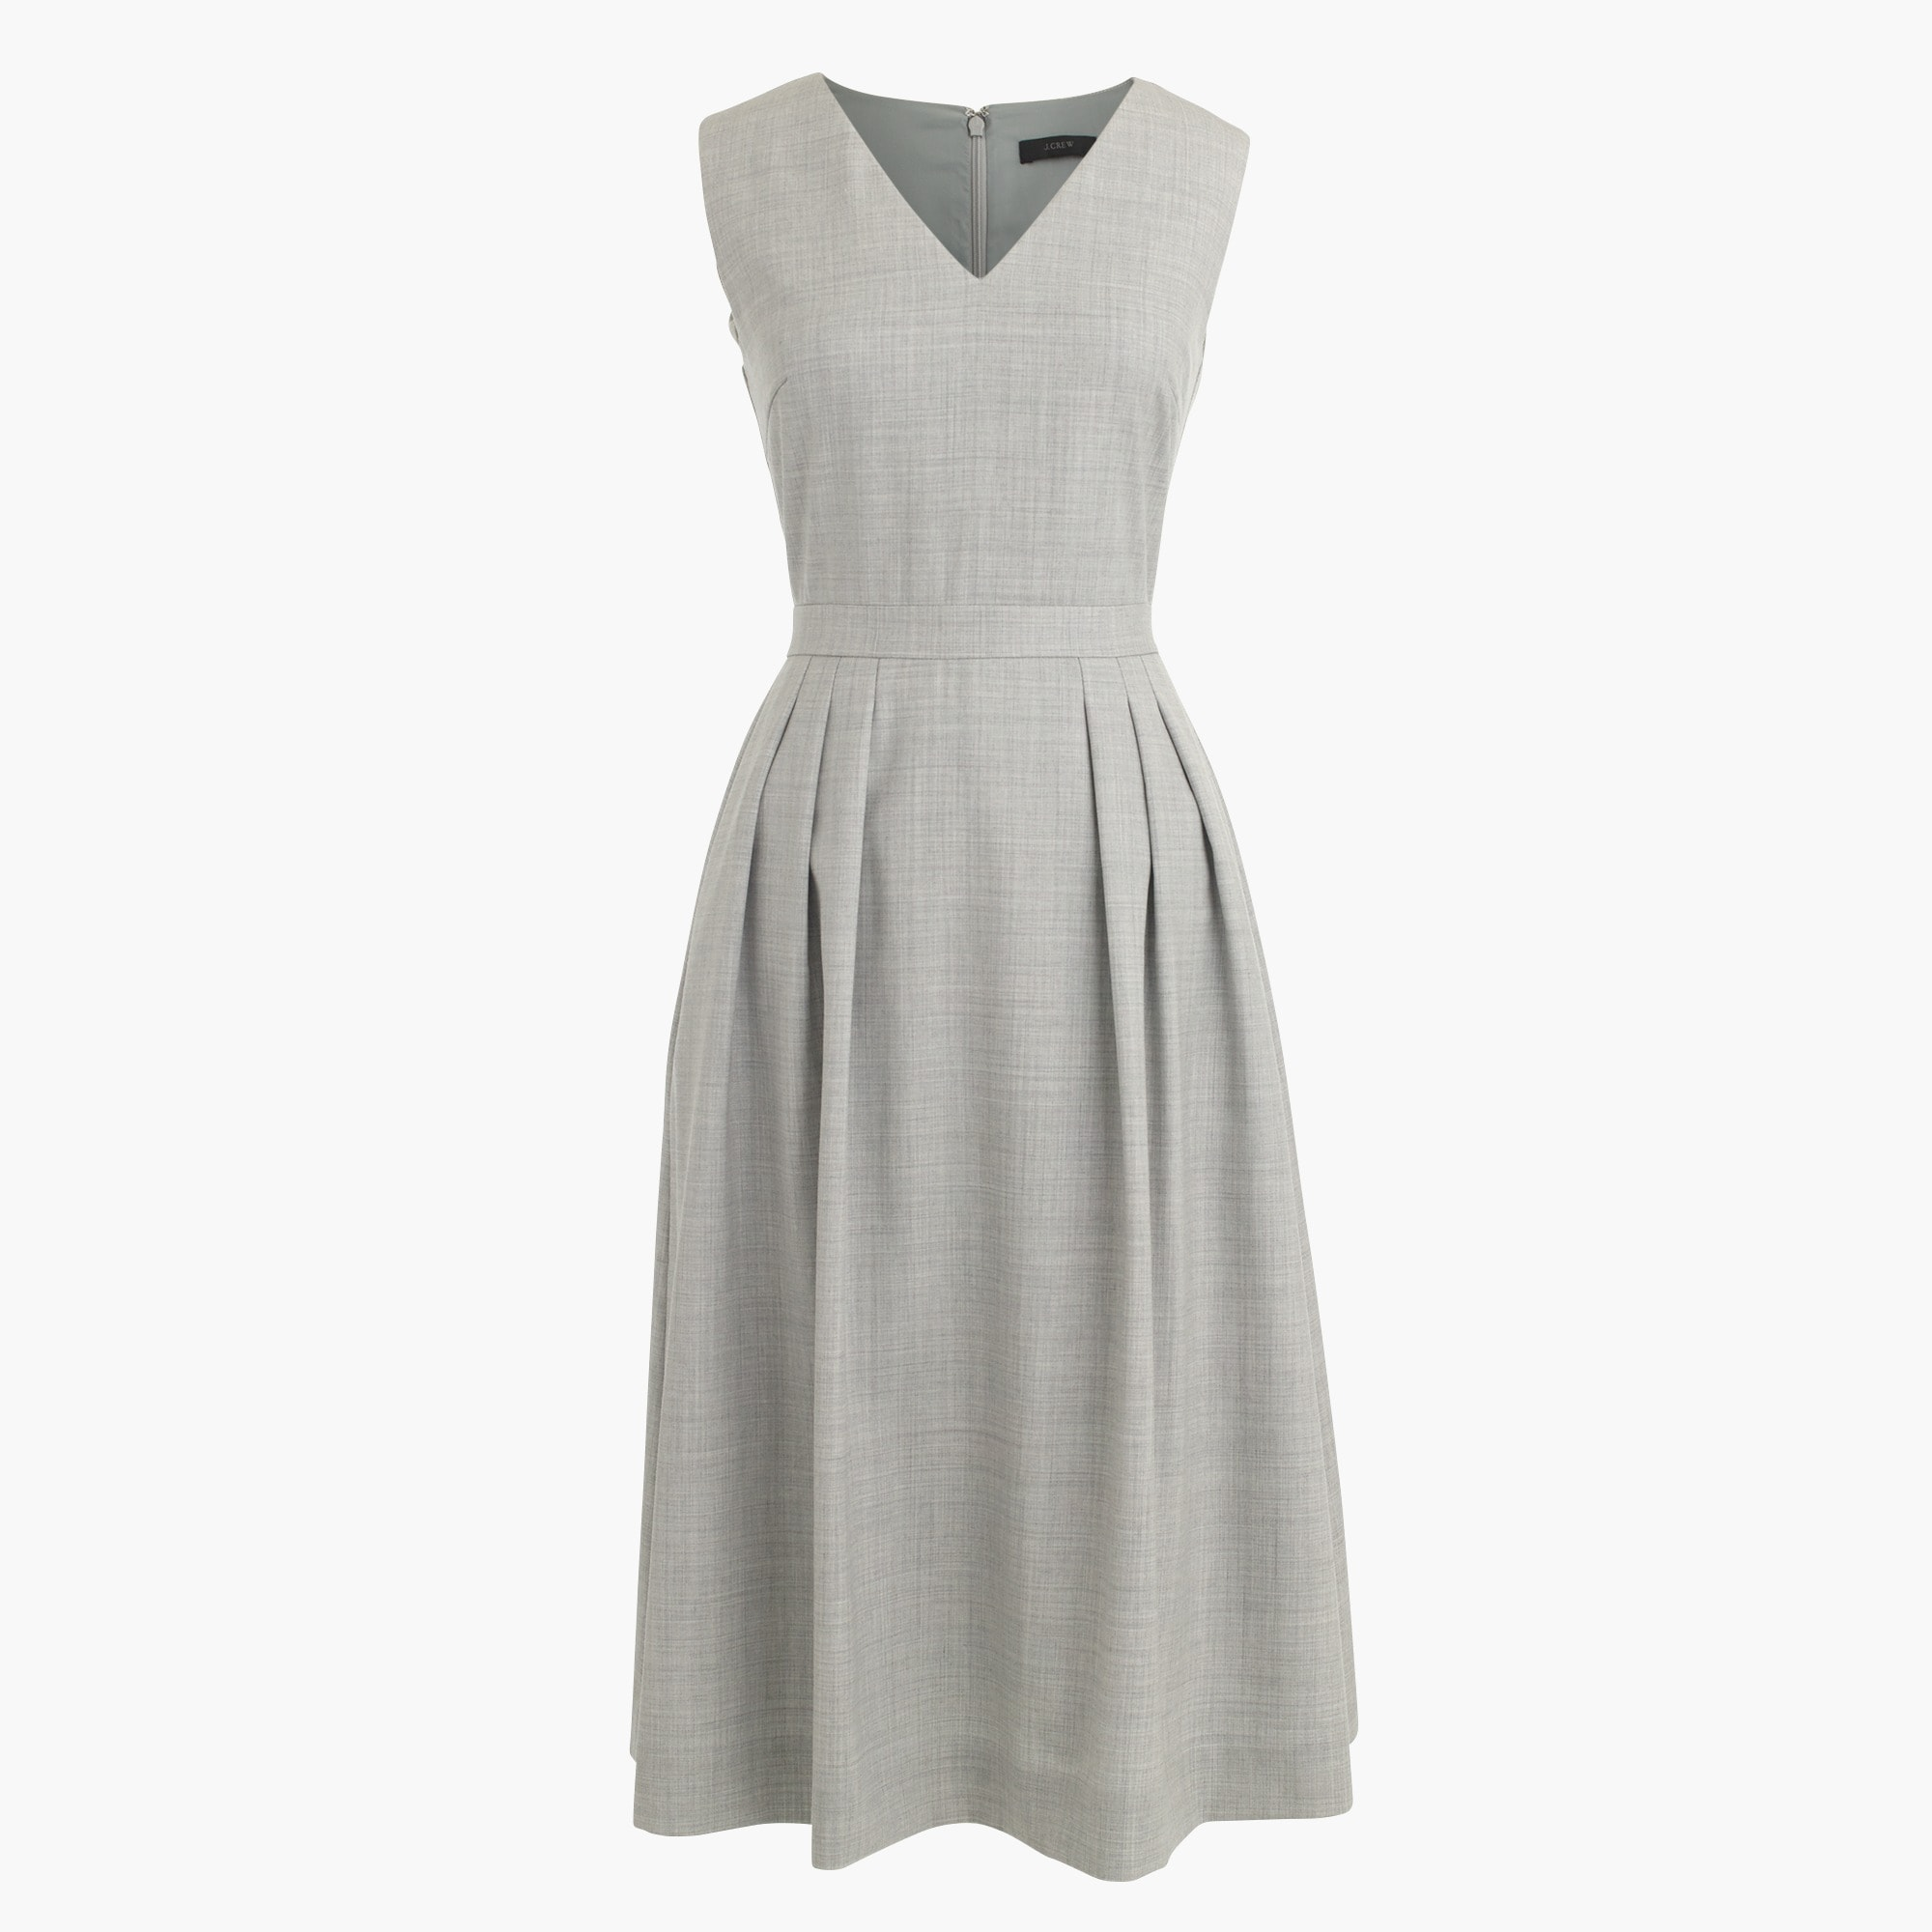 Image 2 for Tall V-neck dress in Super 120s wool